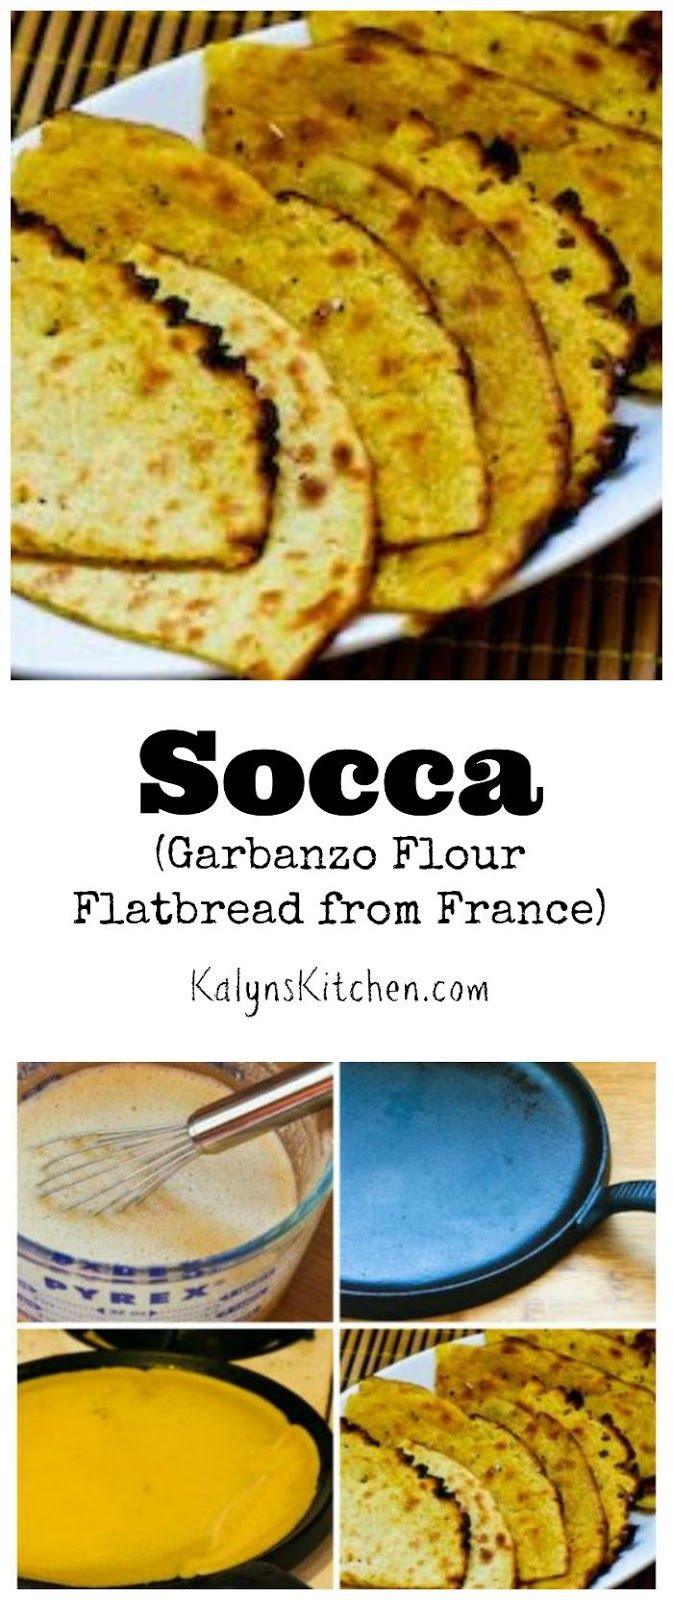 Have you ever tried Socca? It's a  Garbanzo or Chickpea flour Flatbread Pancake from France; so delicious and it's Gluten-Free and Vegan. [from KalynsKitchen.com]